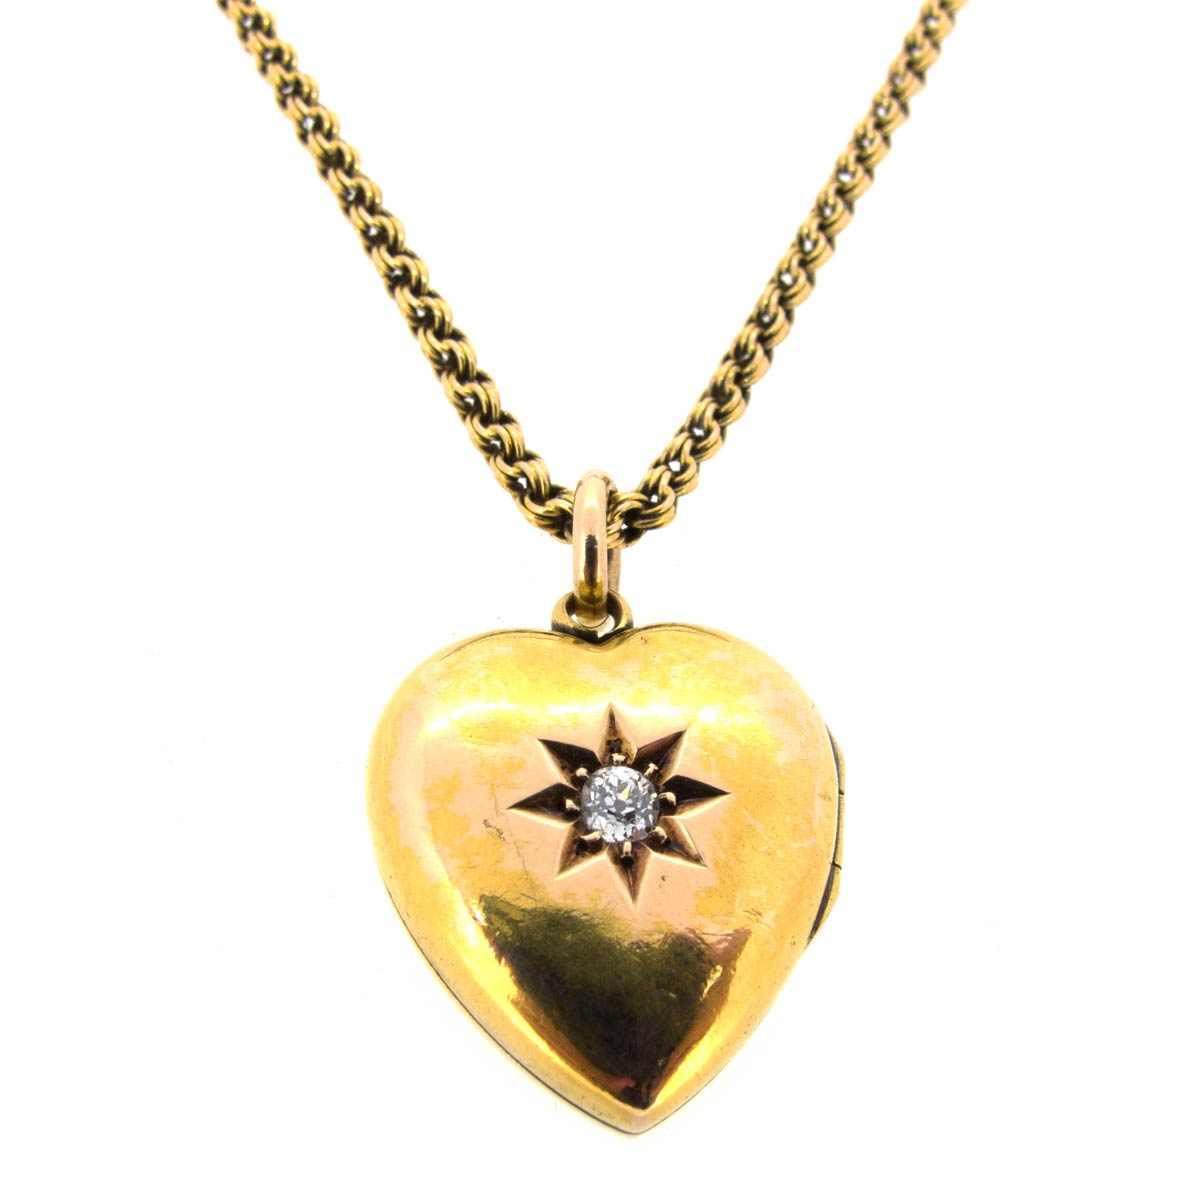 Gold & Diamond Heart Necklace